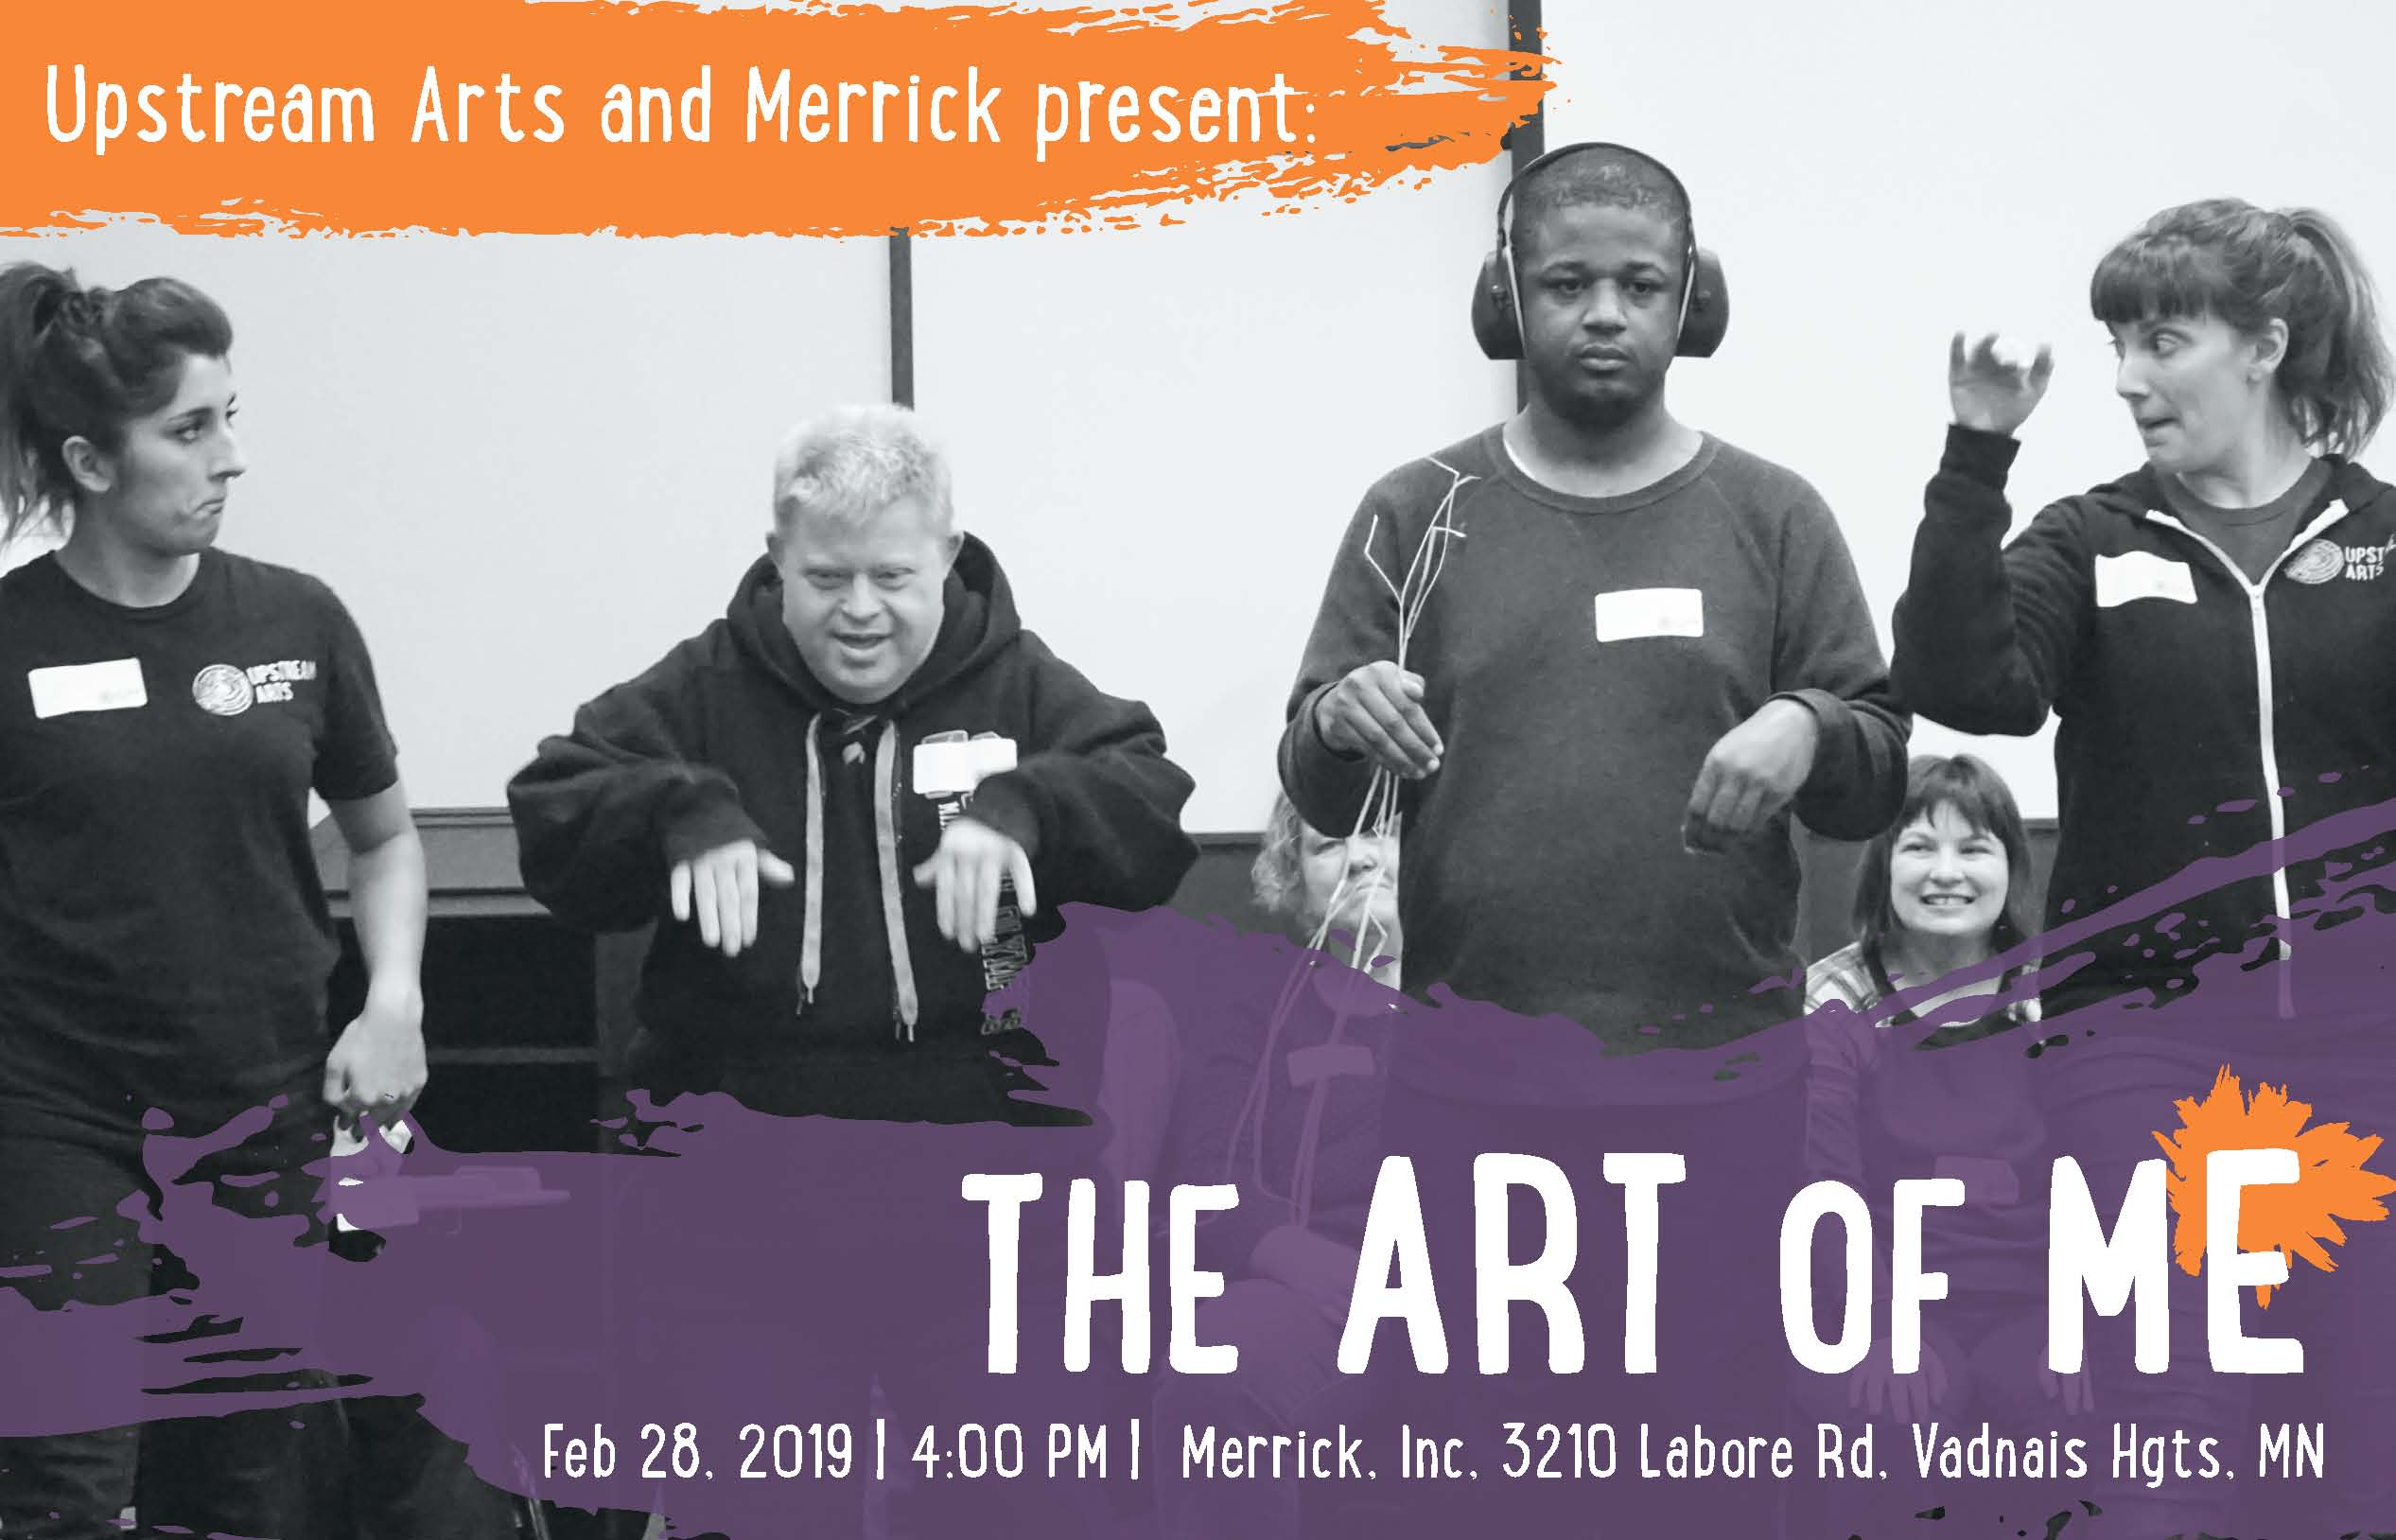 Postcard for the Art of Me: Image with four people moving with text: Upstream Arts and Merrick present The Art of Me Feb. 28, 2019 4:00pm Merrick